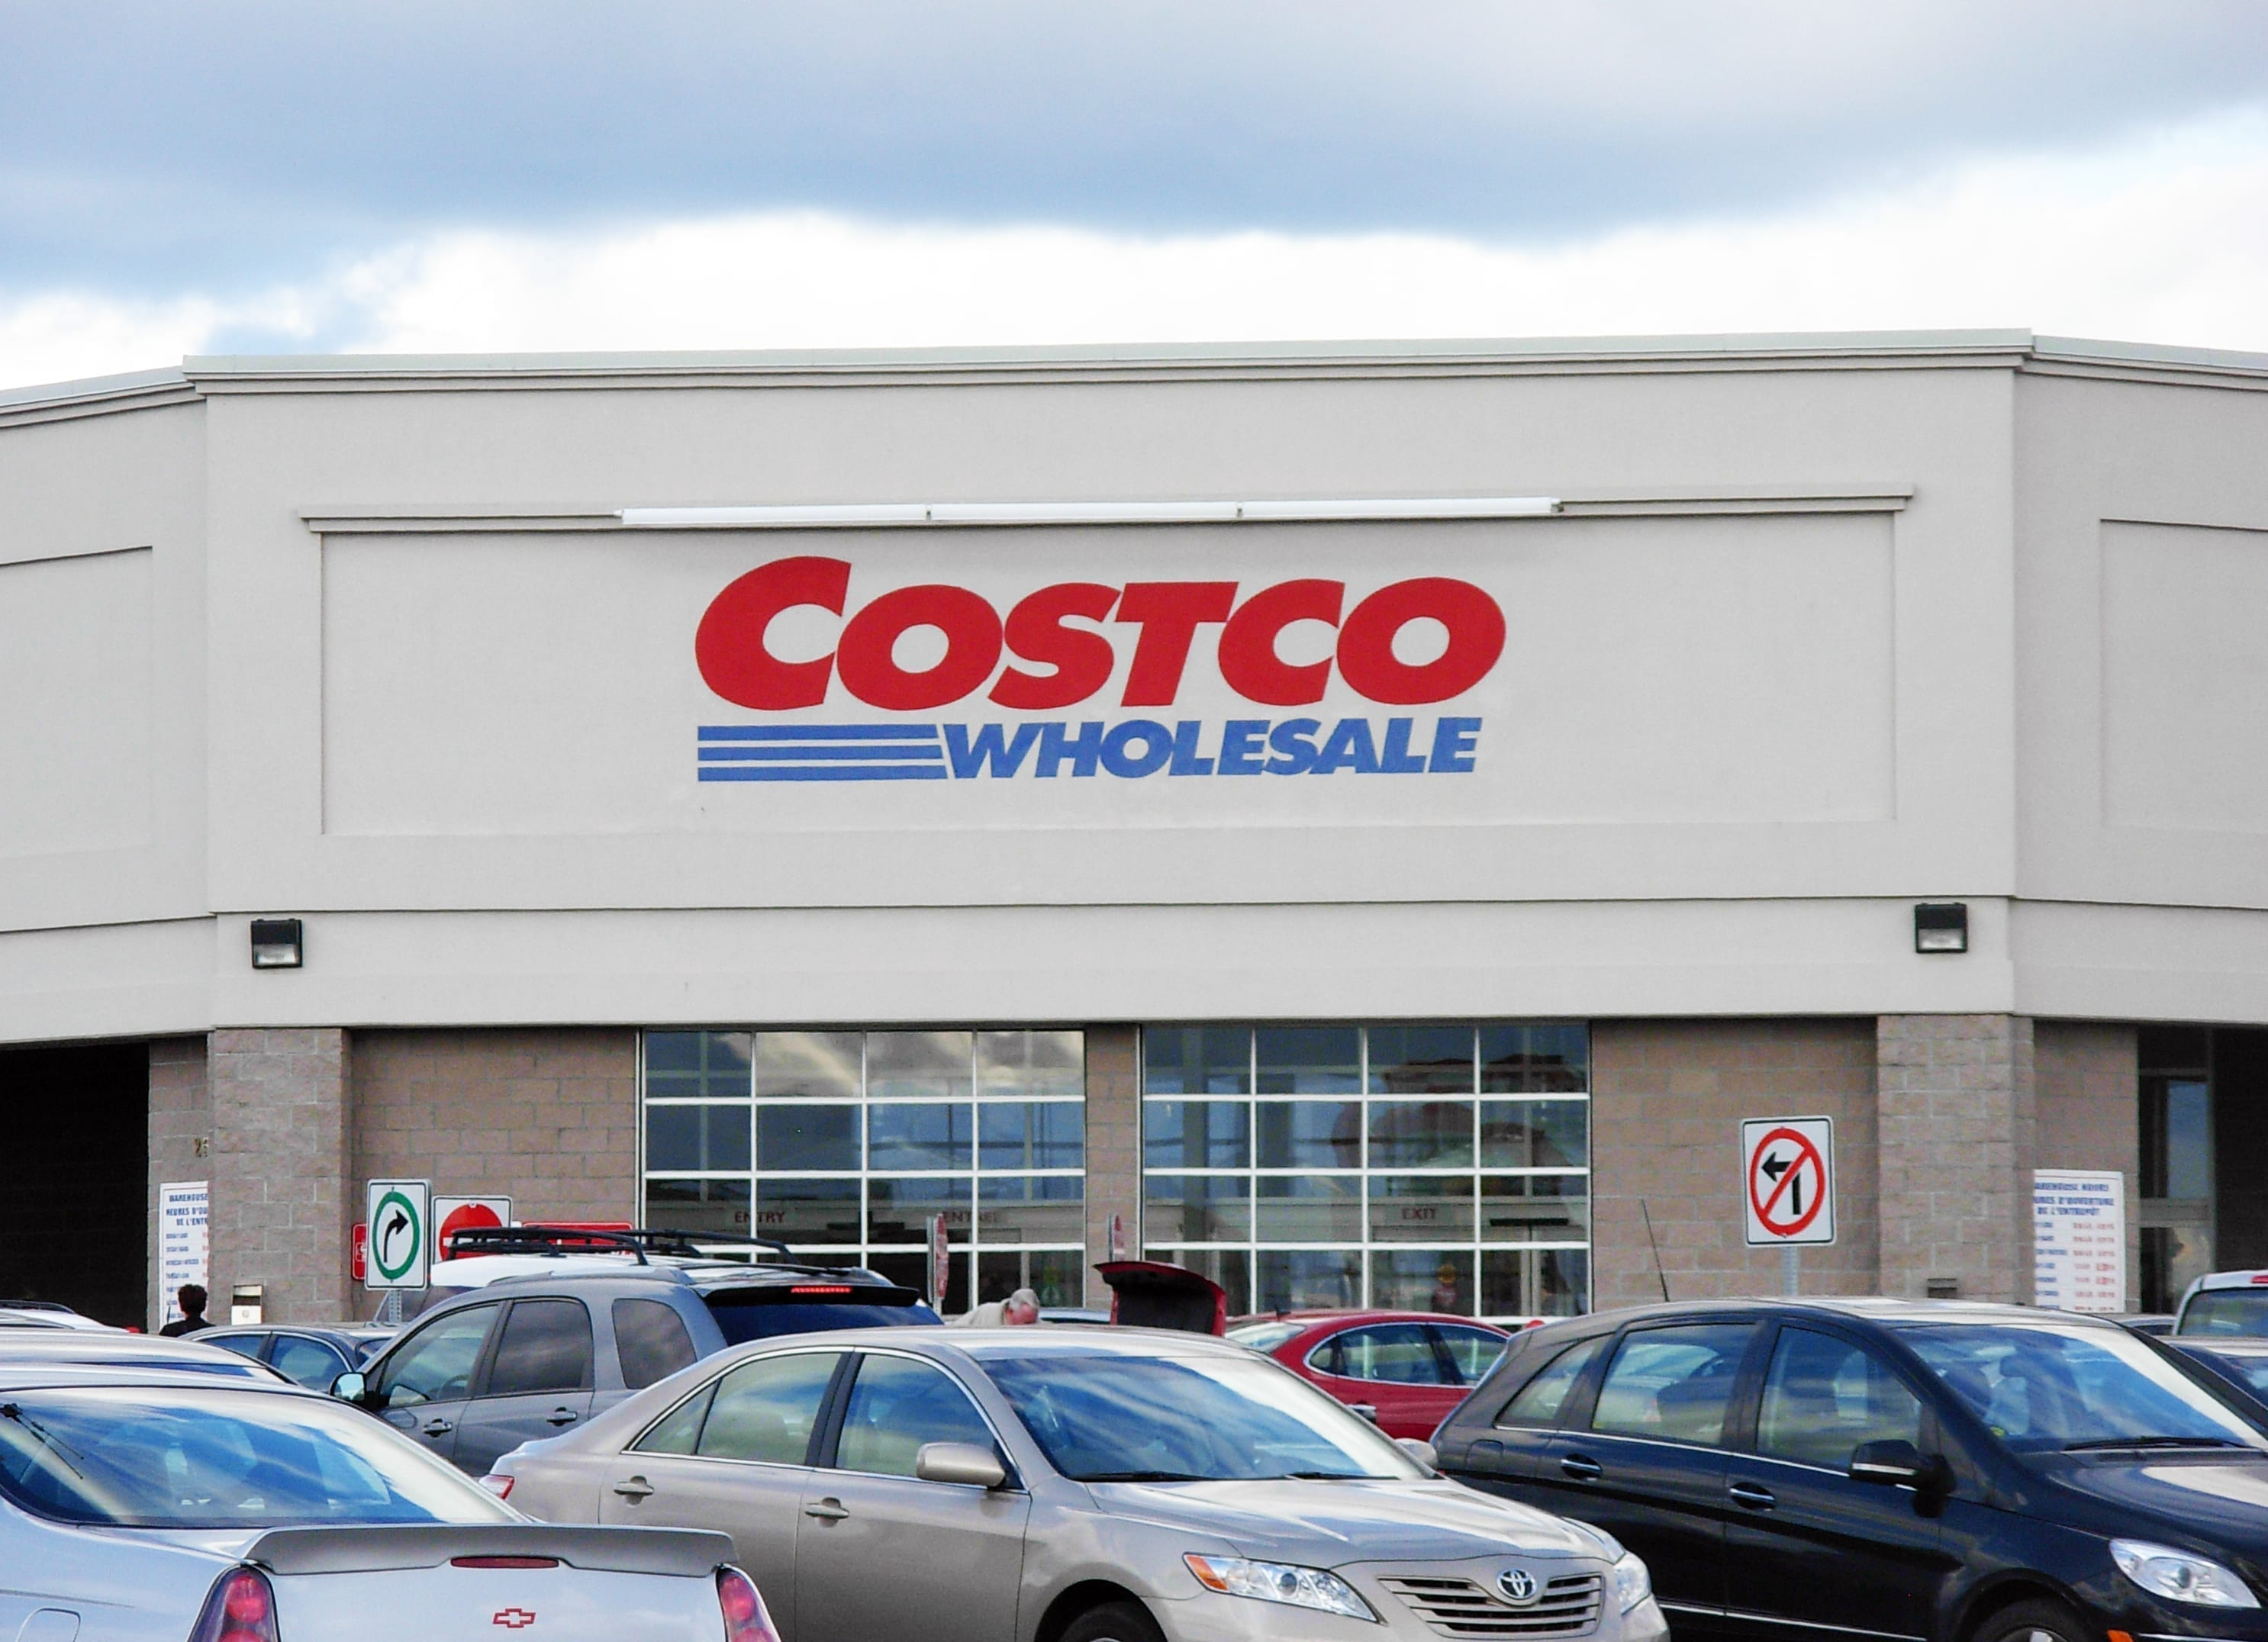 costco be double dipping on s tax legal reader costcomoncton